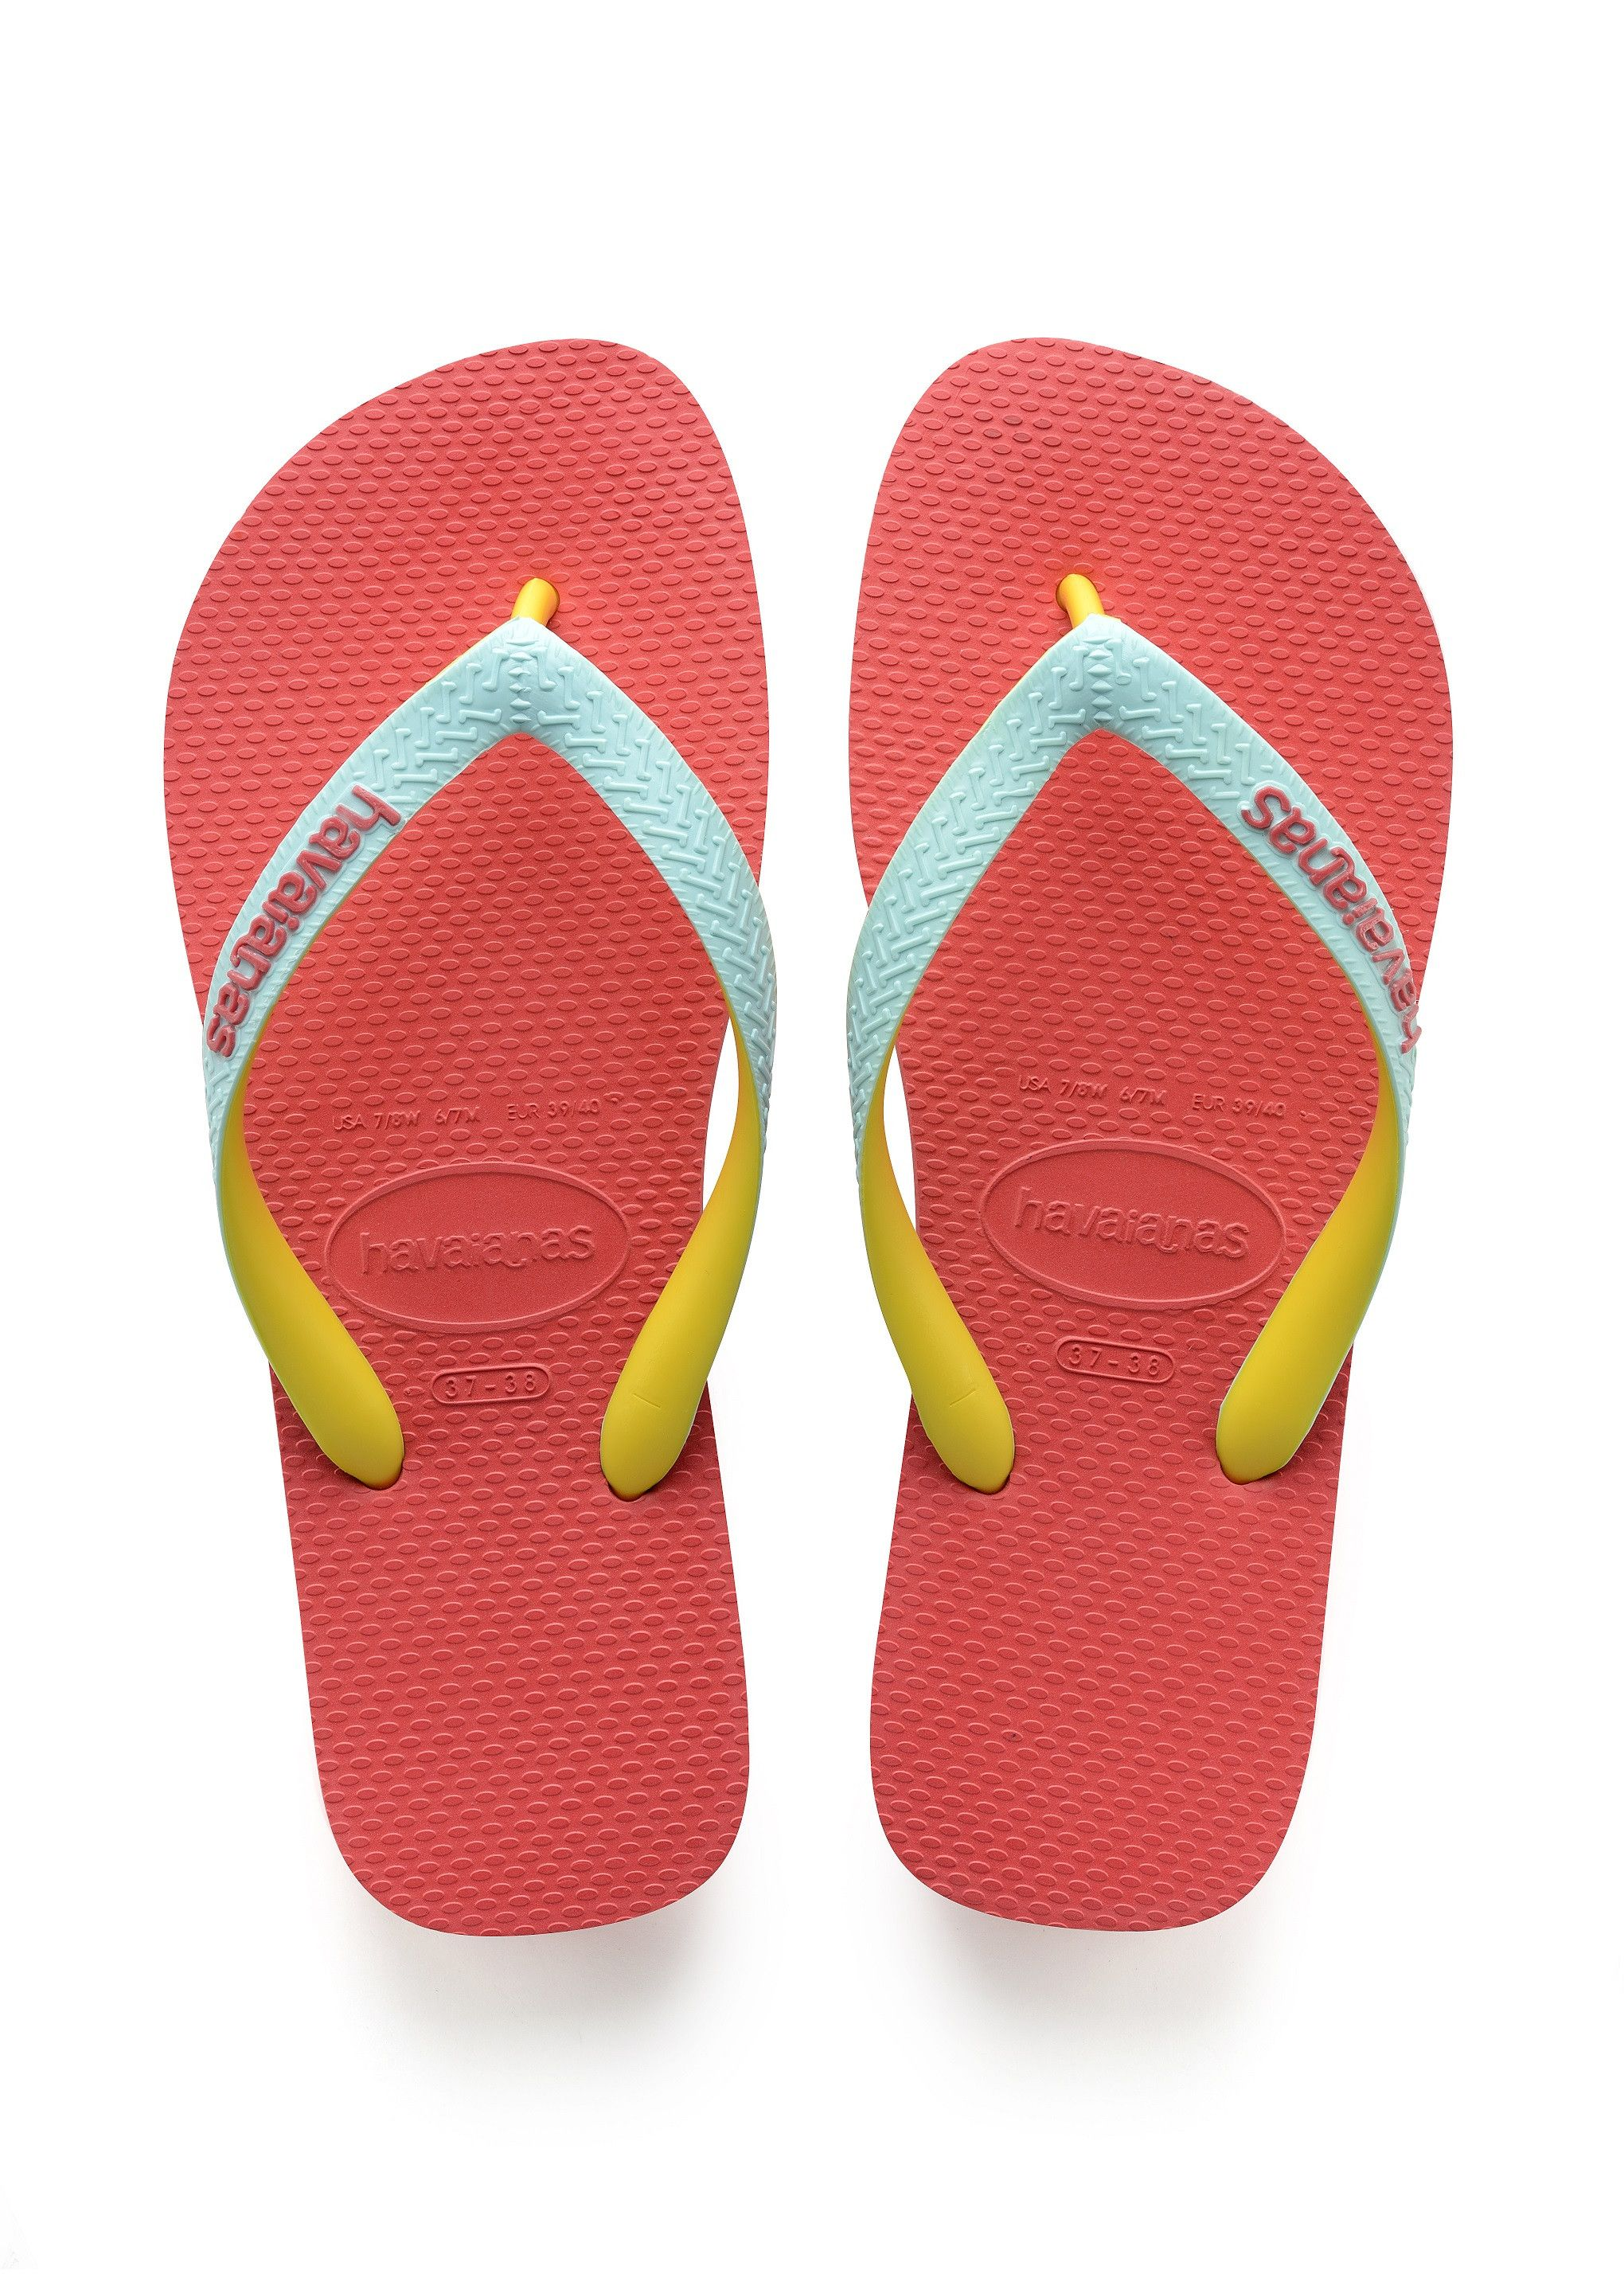 2e4ae8149 Havaianas Top Mix Sandal Coral Price From  14